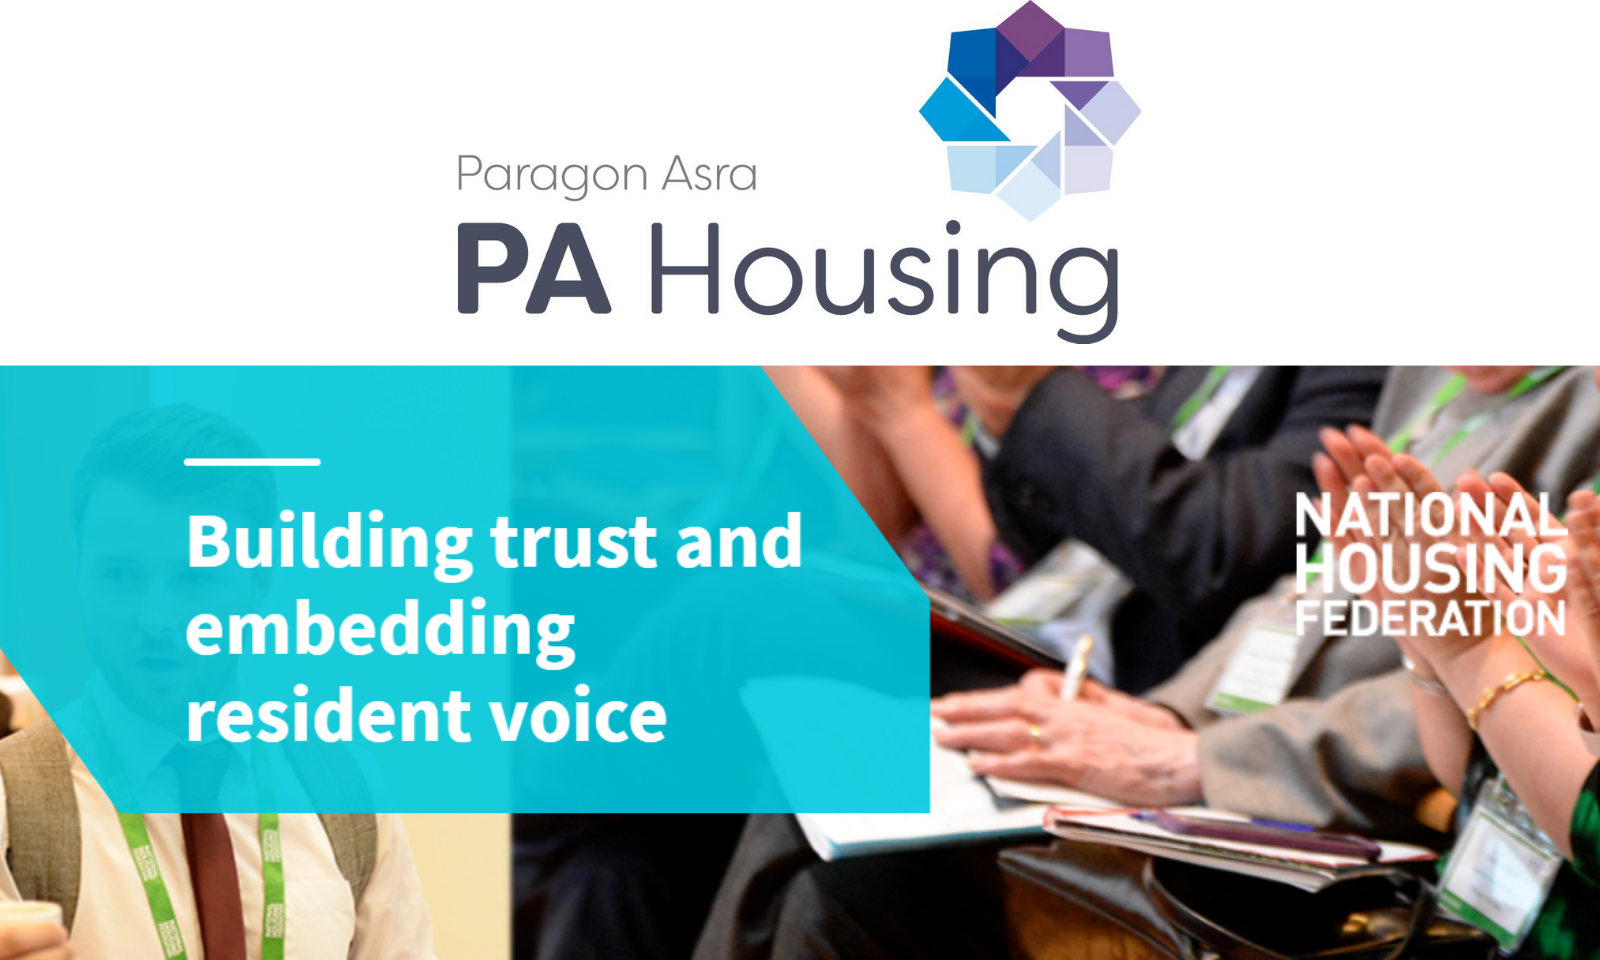 Building trust and embedding resident voice